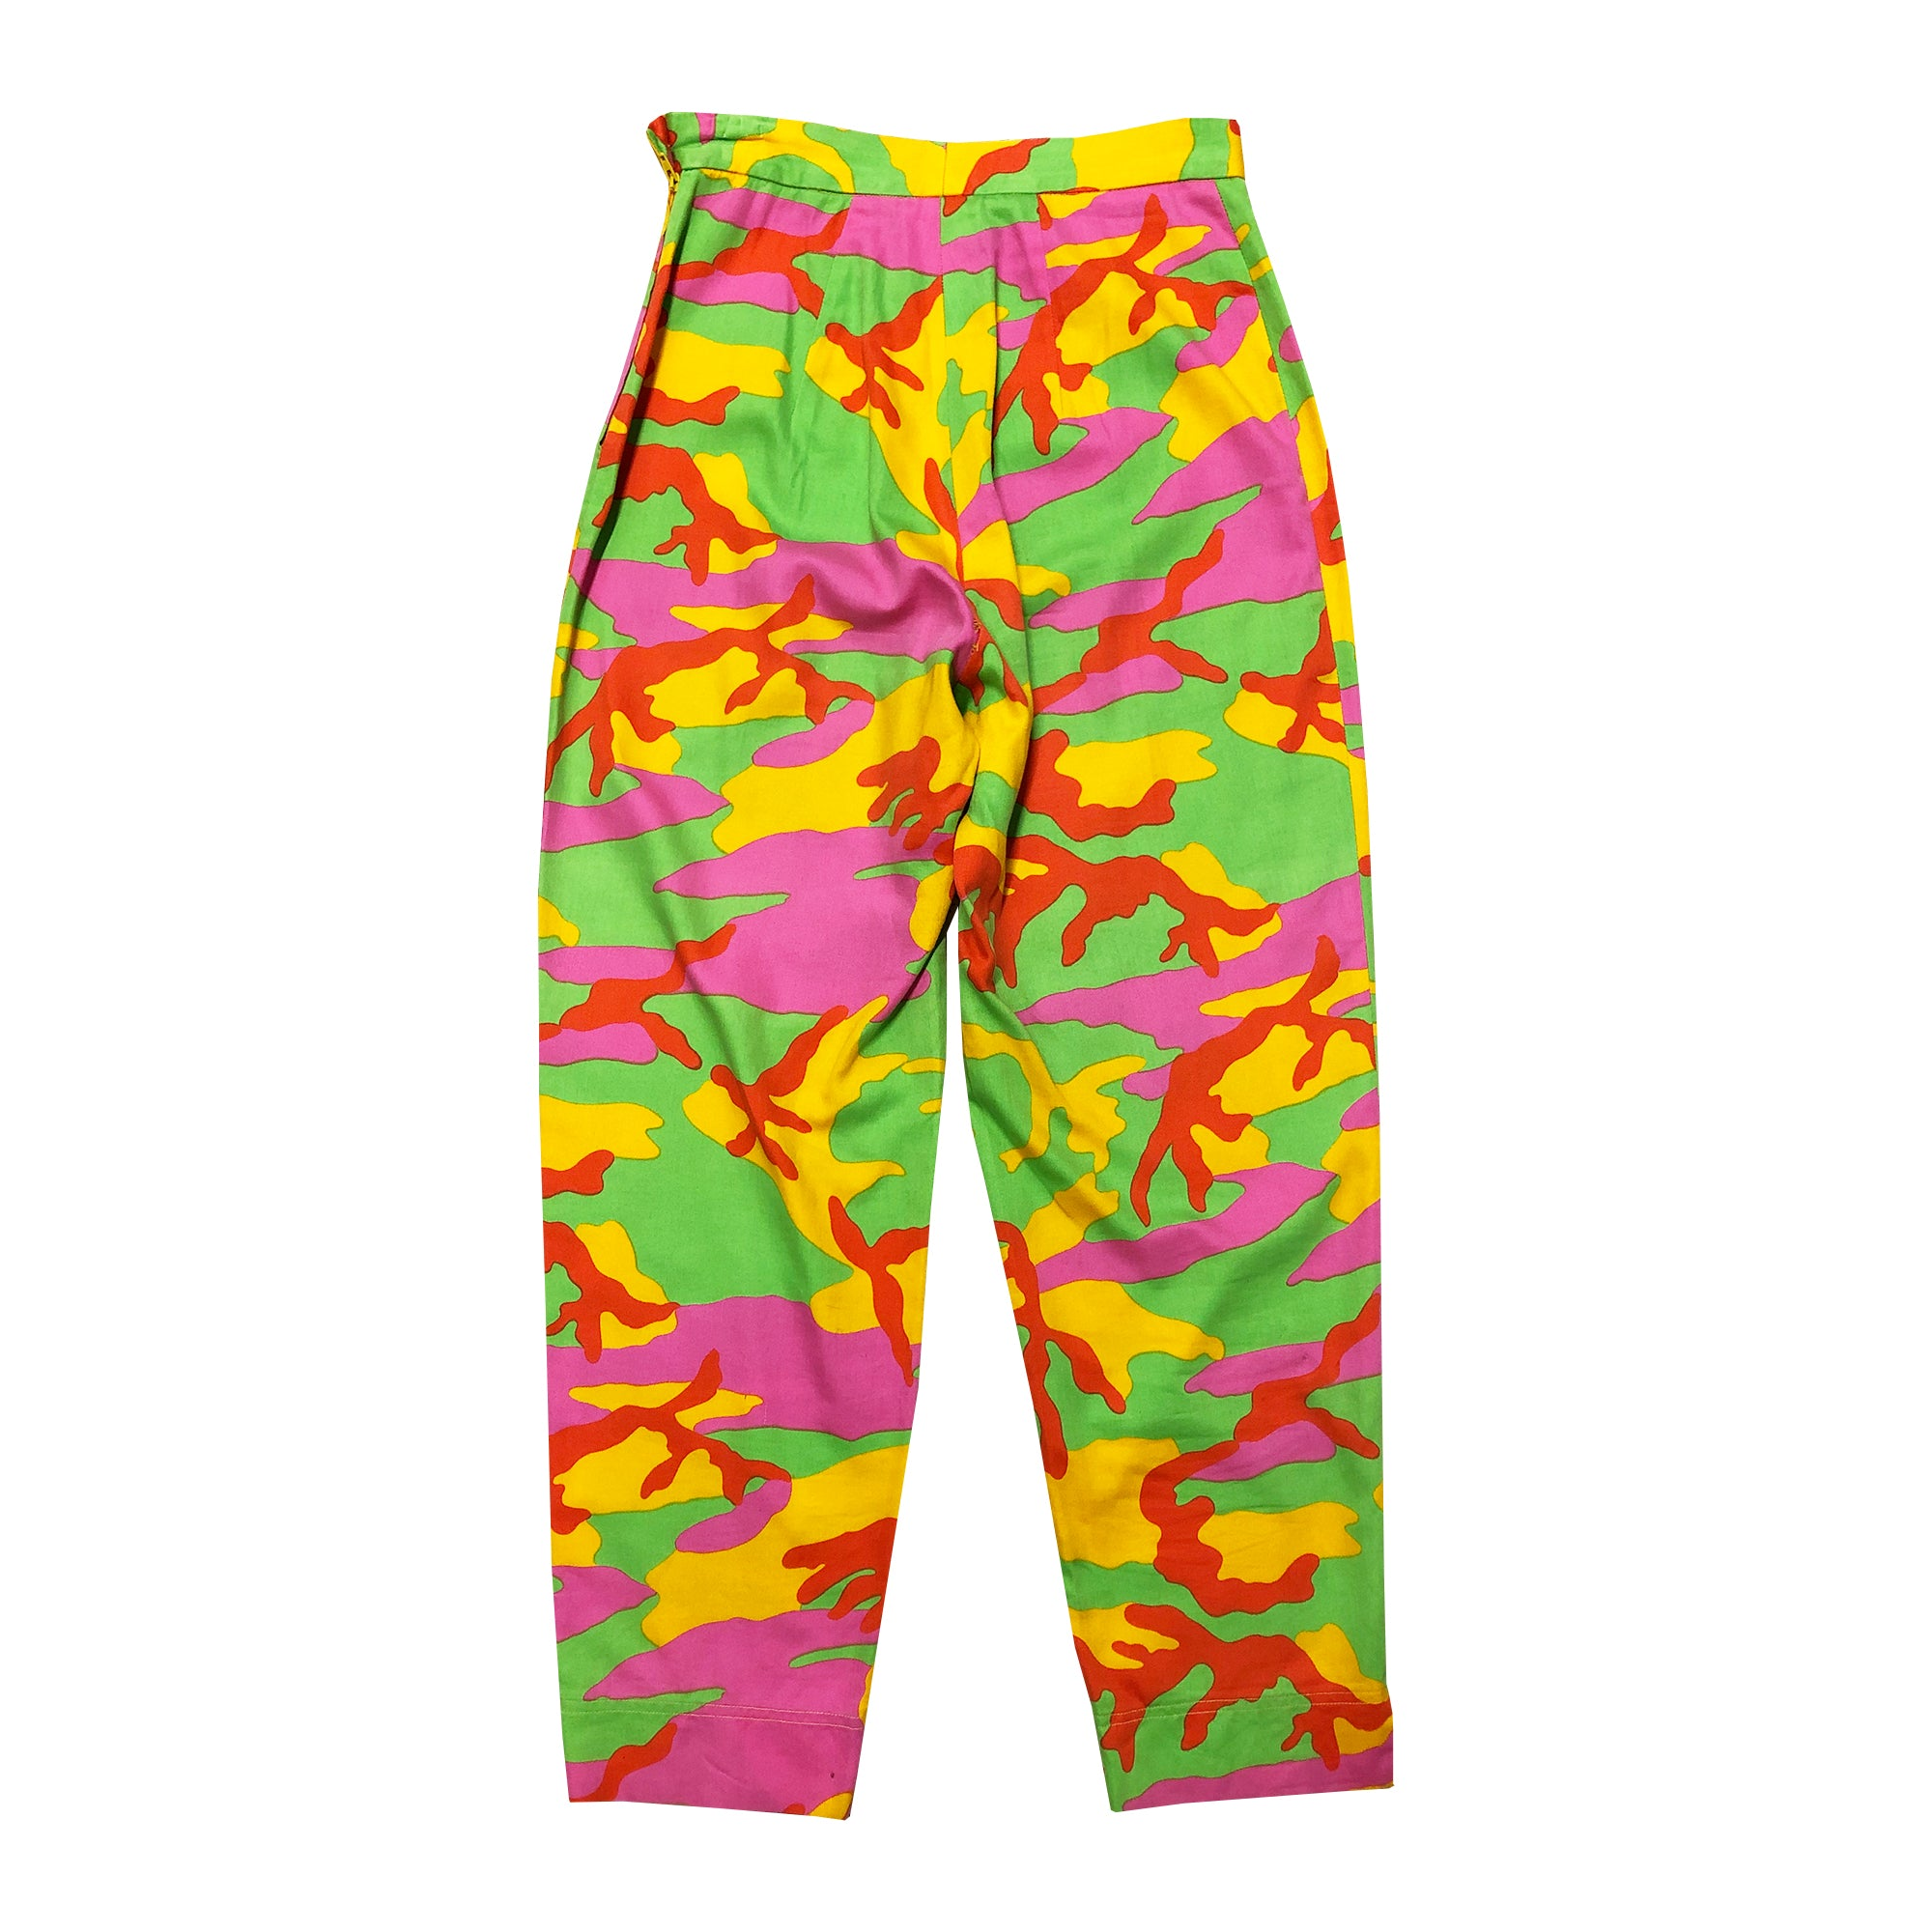 Moschino Neon Camo Trousers (Multi) UK 8